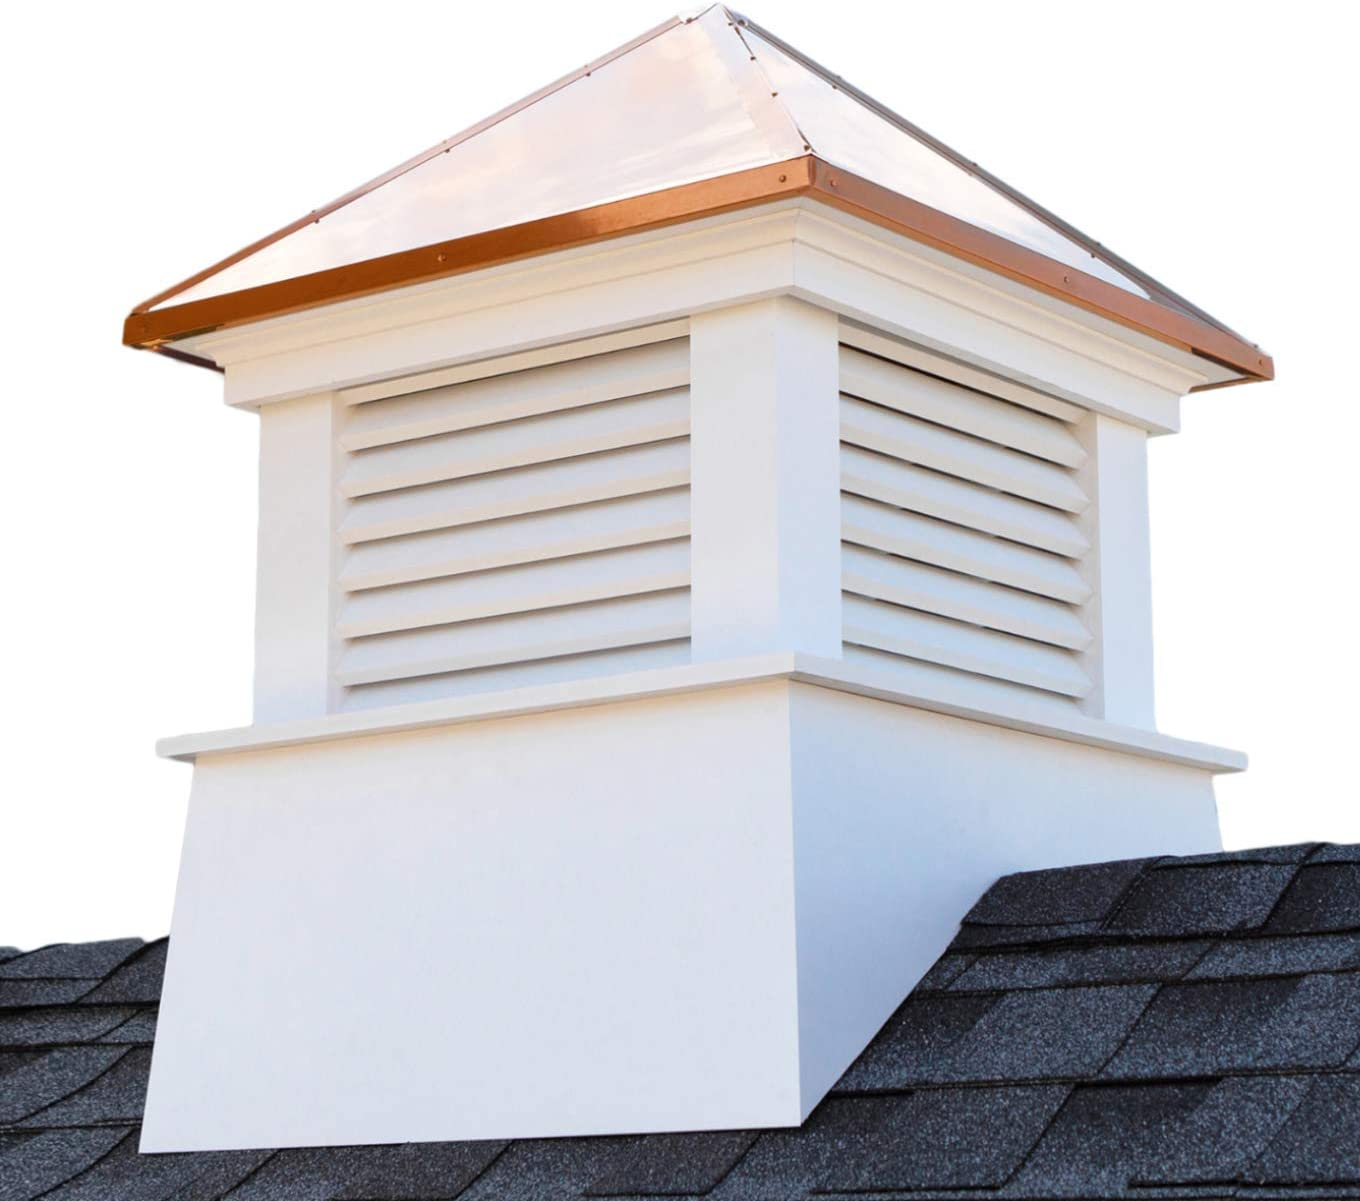 "Manchester Vinyl Cupola, Perfect Size for a Small Shed, 18"" square x 22"" high, Pure Copper Roof, Quick Ship"